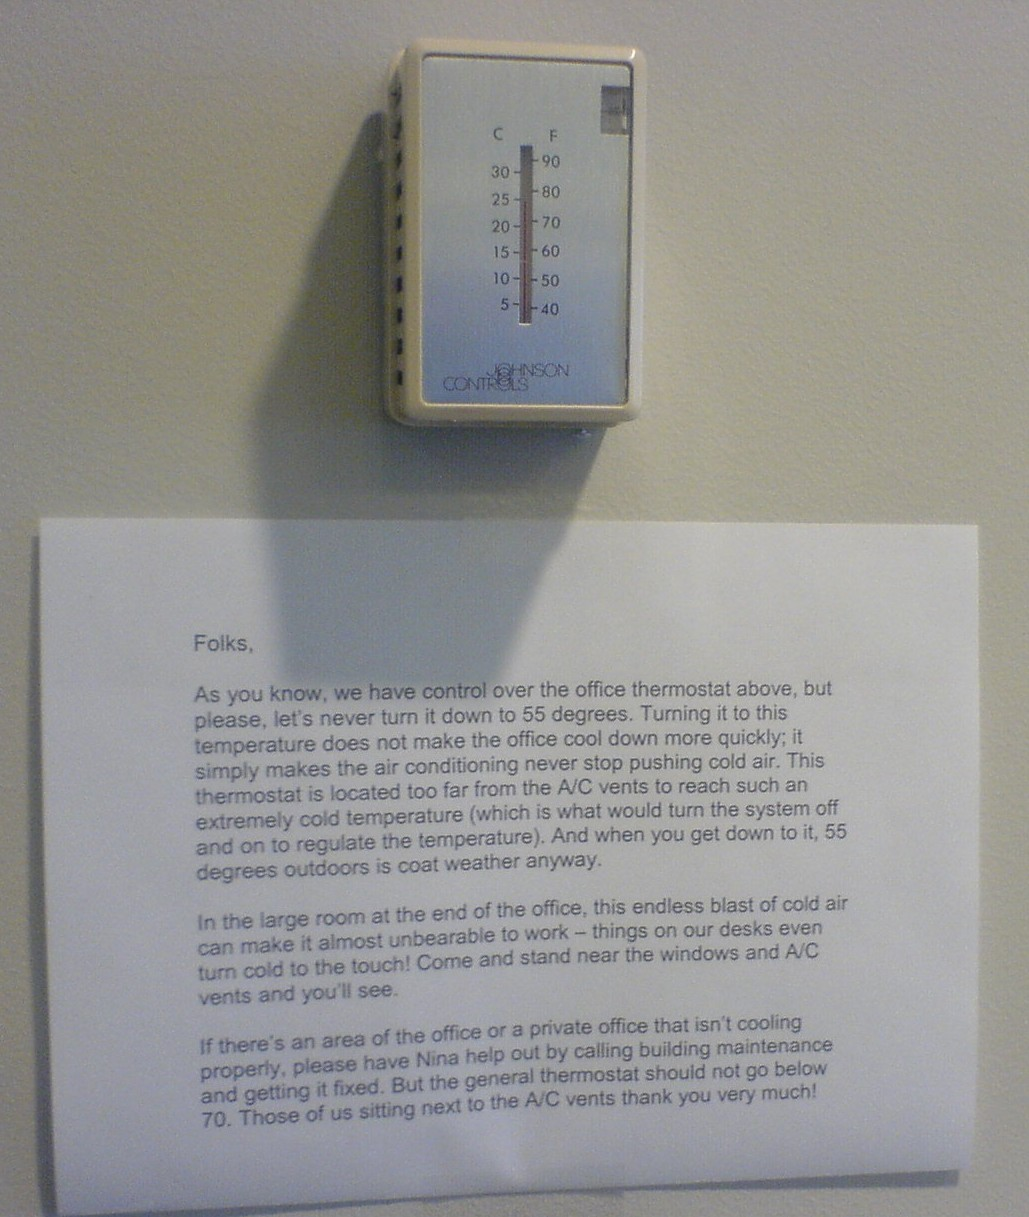 Folks, as you know, we have control over the office thermostat above, but please, let's never turn it down to 55 degrees. Turning it to this temperature does not make the office cool down more quickly; it simply makes the air conditioning never stop pushing cold air. This thermostat is located too far from the A/C to reach such an extremely cold temperature (which is what would turn the system off and on to regulate the temperature). And when you get down to it, 55 degrees outdoors is coat weather anyway. In the large room at the end of the office, this endless blast of cold air can make it almost unbearable to work — things on our desks even turn cold to the touch! Come and stand near the windows and the A/C vents and you'll see. If there's an area of the office or a private office that isn't cooling properly, please have Nina help out by calling building maintenance and getting it fixed. But the general thermostat should not go below 70. Those of us sitting next to the A/C vents thank you very much!